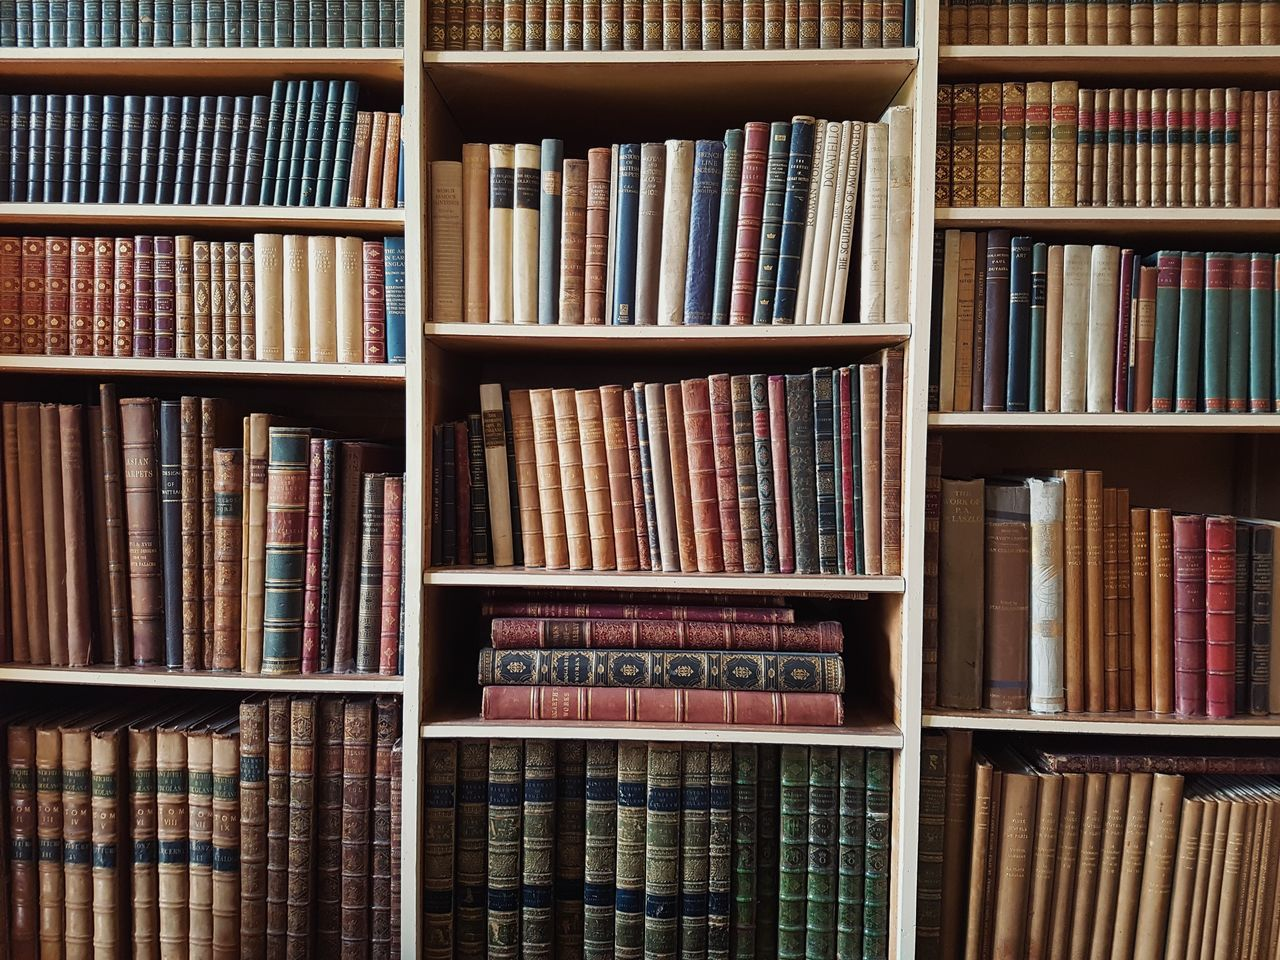 Bookshelf Book Library Shelf Indoors  Large Group Of Objects Choice Collection Education Abundance Antique Literature Variation Backgrounds No People Turistic Attractions Old-fashioned Home Interior Domestic Room Architecture Travel Photography Historical Building Travel Textured  Library